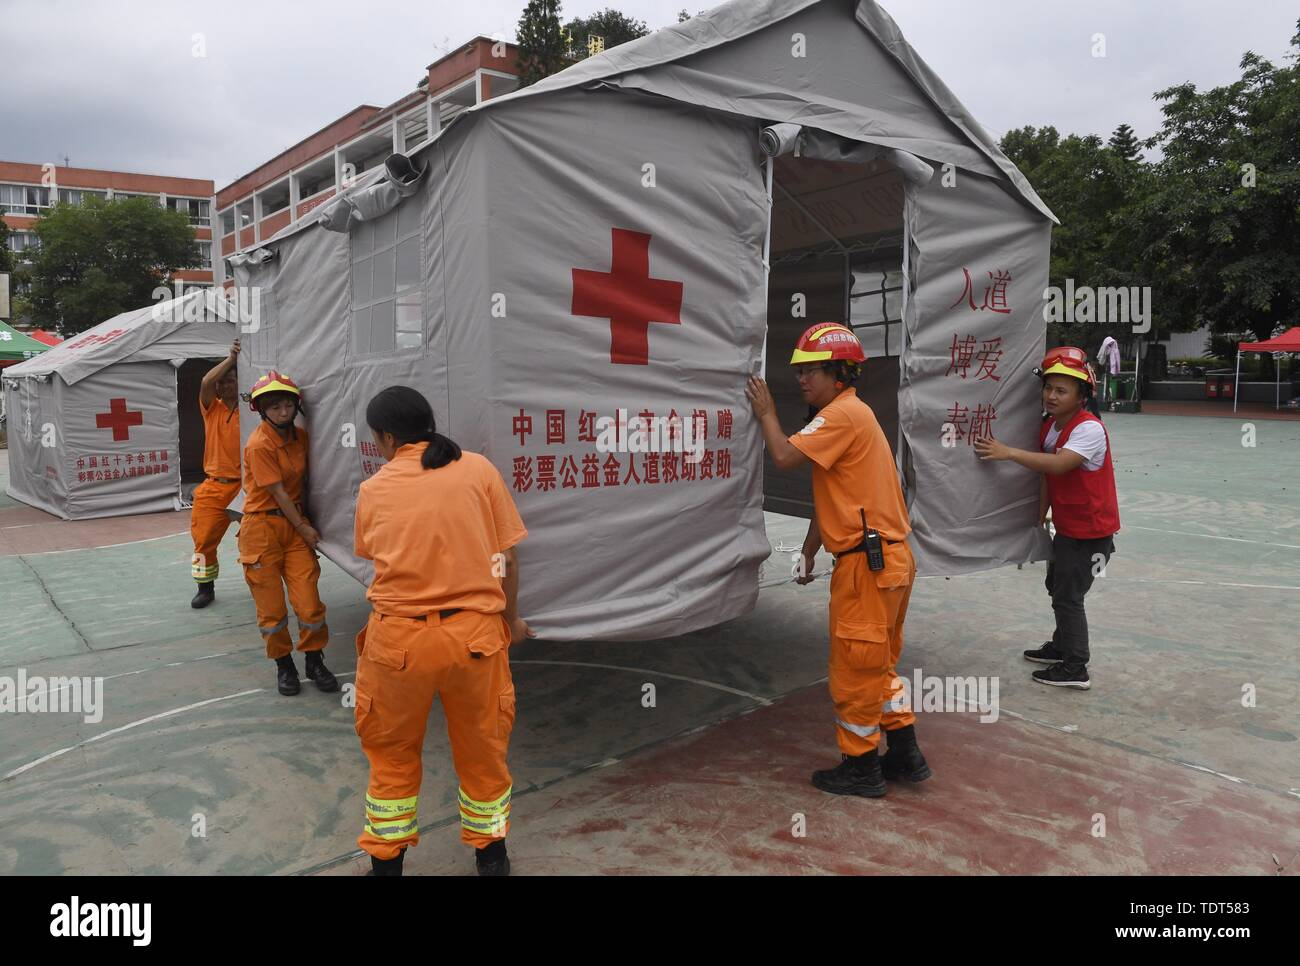 Changning, China's Sichuan Province. 18th June, 2019. Rescue workers put up tents at Shuanghe Town in Changning County of Yibin City, southwest China's Sichuan Province, June 18, 2019. Thirteen people died and 199 were injured after a 6.0-magnitude earthquake hit southwest China's Sichuan Province at 10:55 p.m. Monday, the Ministry of Emergency Management said Tuesday. Credit: Liu Kun/Xinhua/Alamy Live News - Stock Image